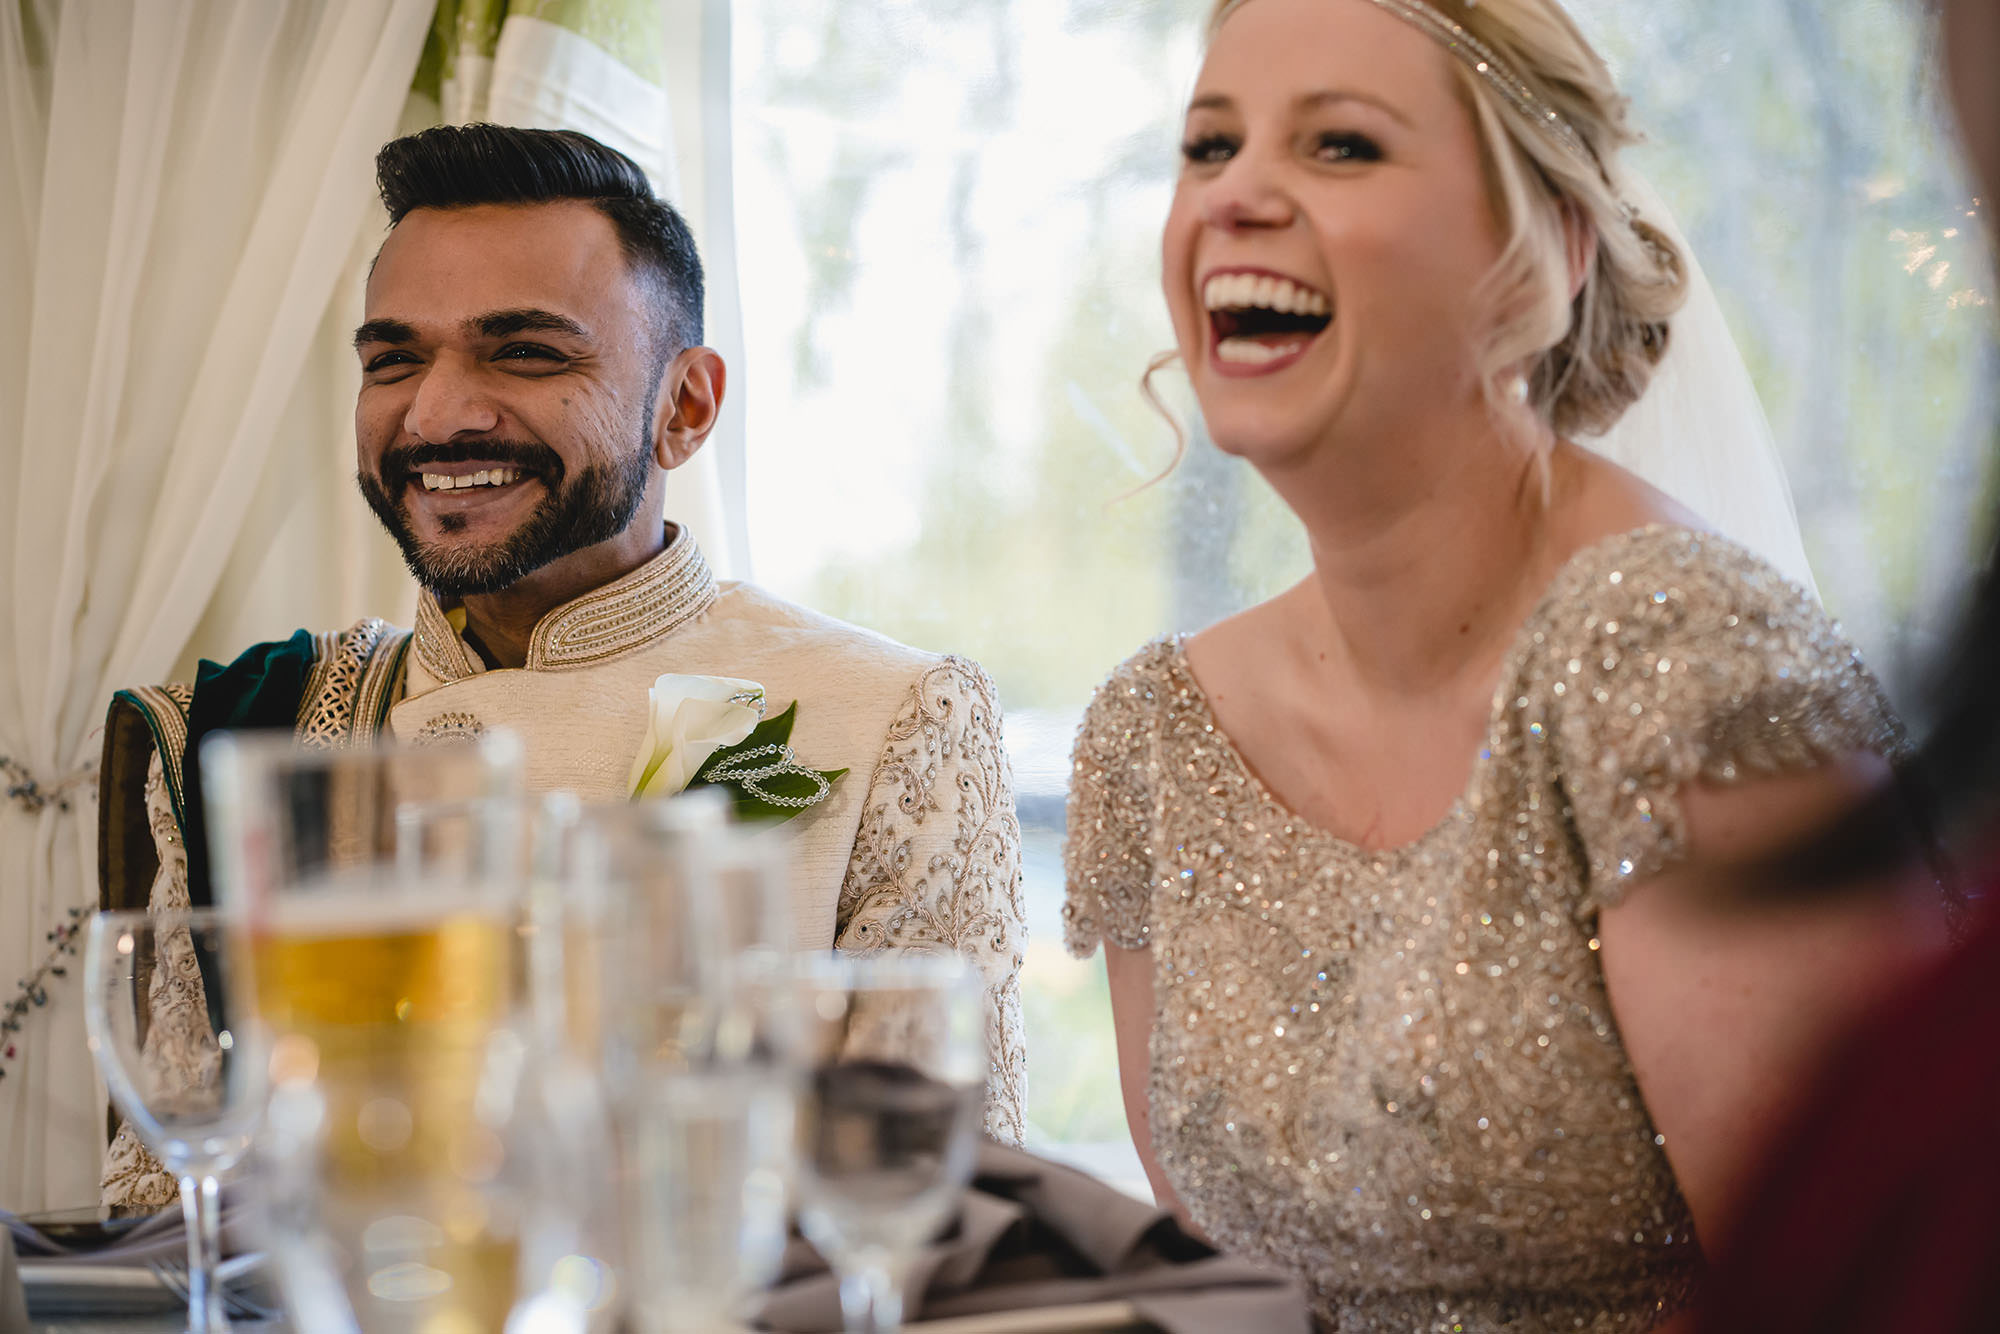 laughter of bride and groom during speeches